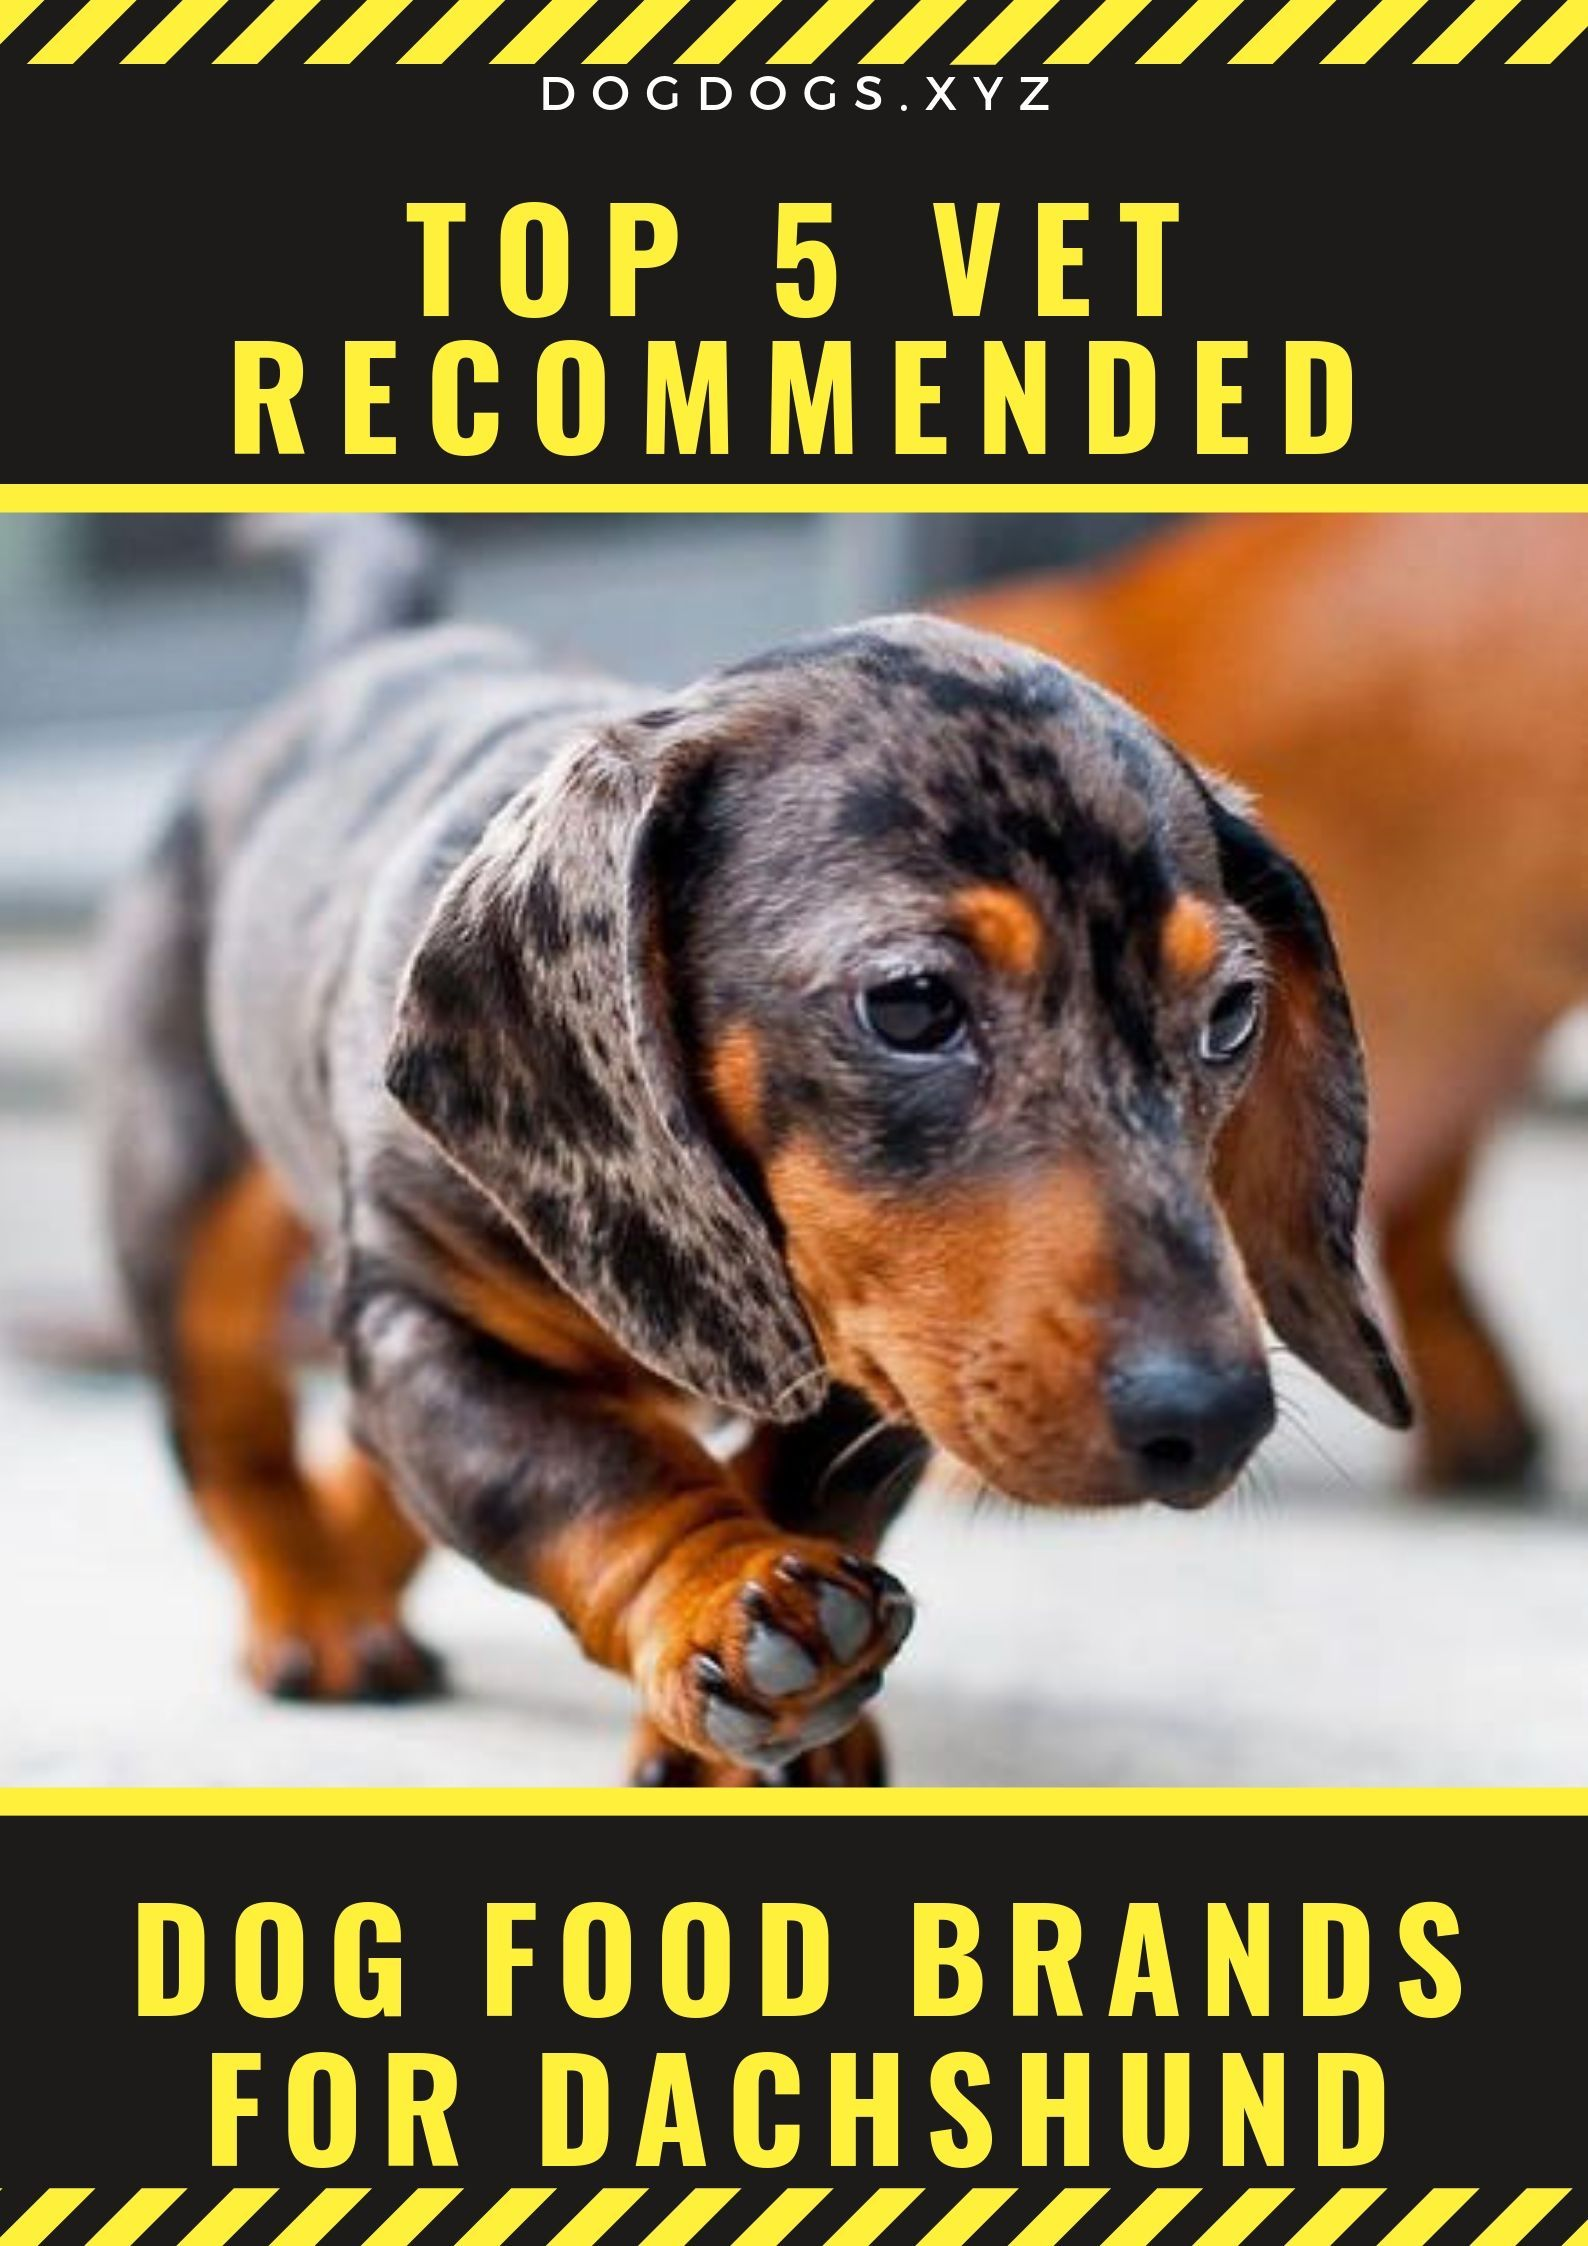 Top 5 Vet Recommended Dog Food Brands For Dachshund Dogs Dog